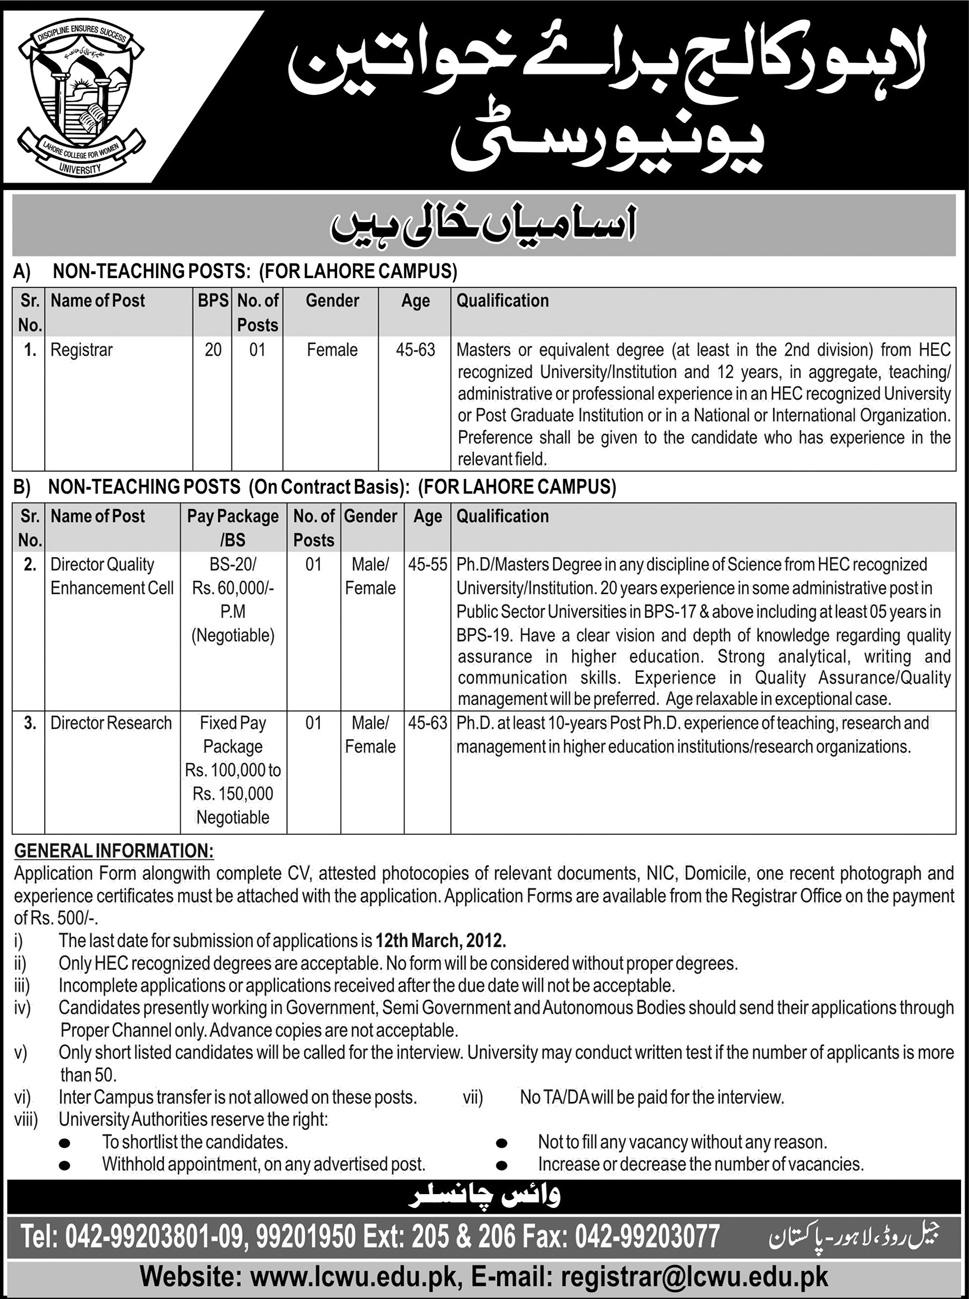 Lahore College for Women University Jobs Opportunity